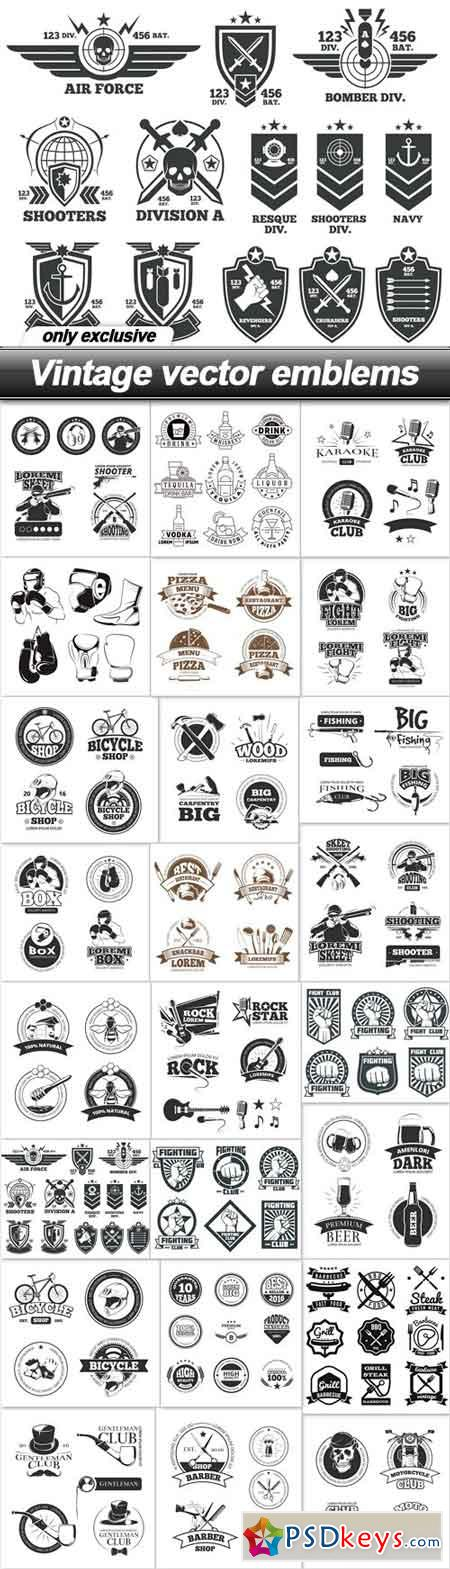 Vintage vector emblems - 24 EPS